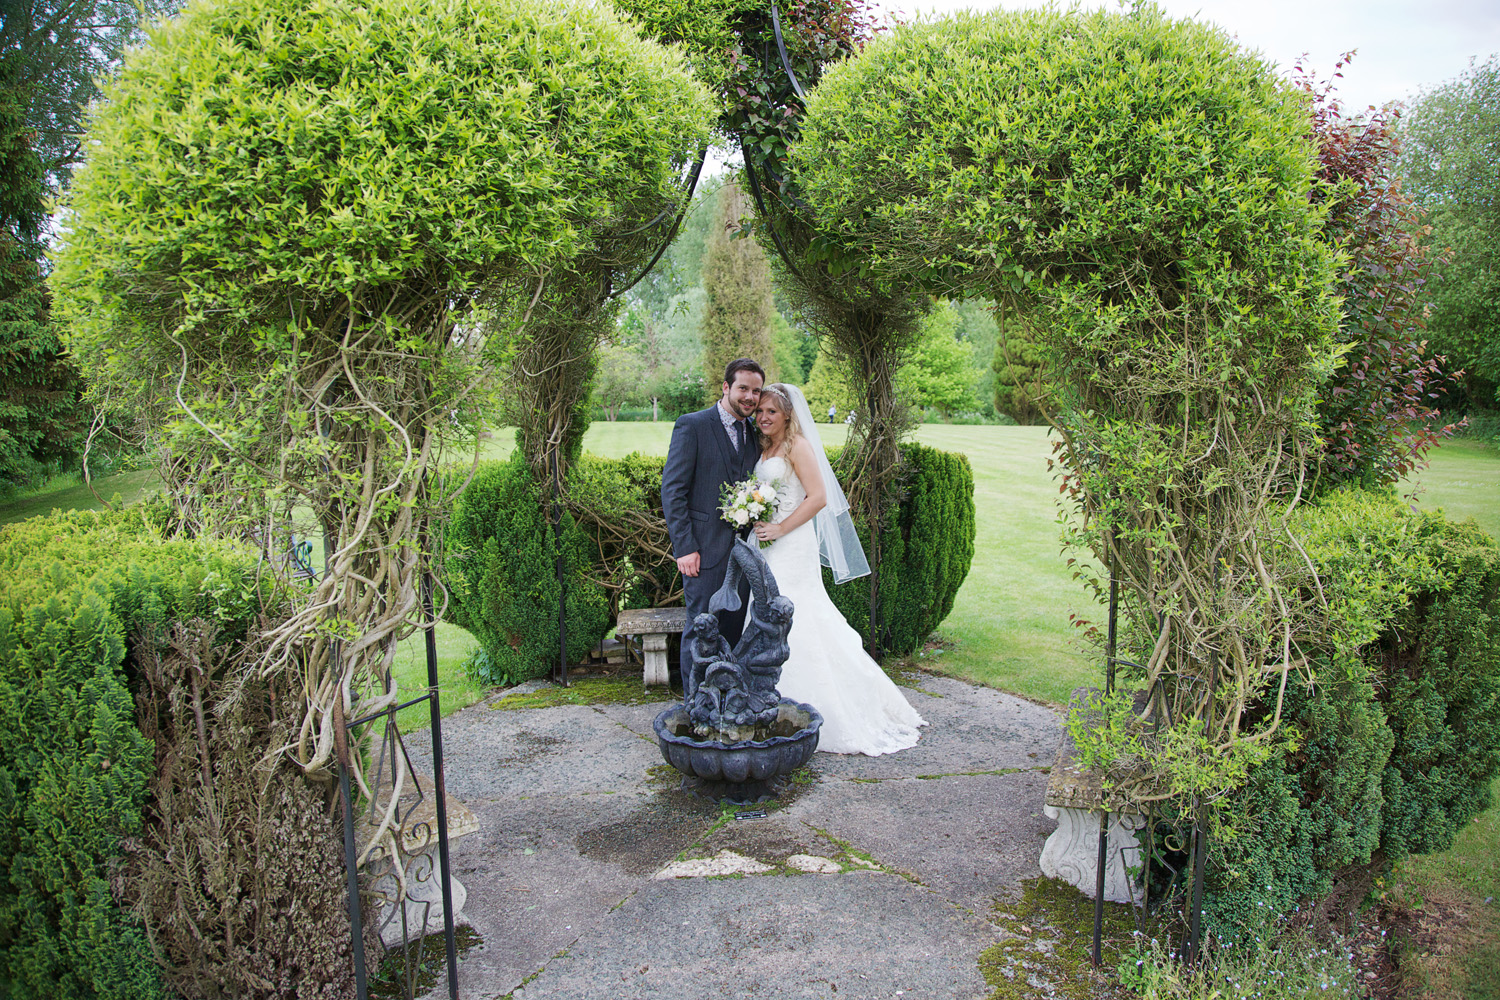 The_Old_Mill_Wedding_Photographer_Aldermaston_018.jpg